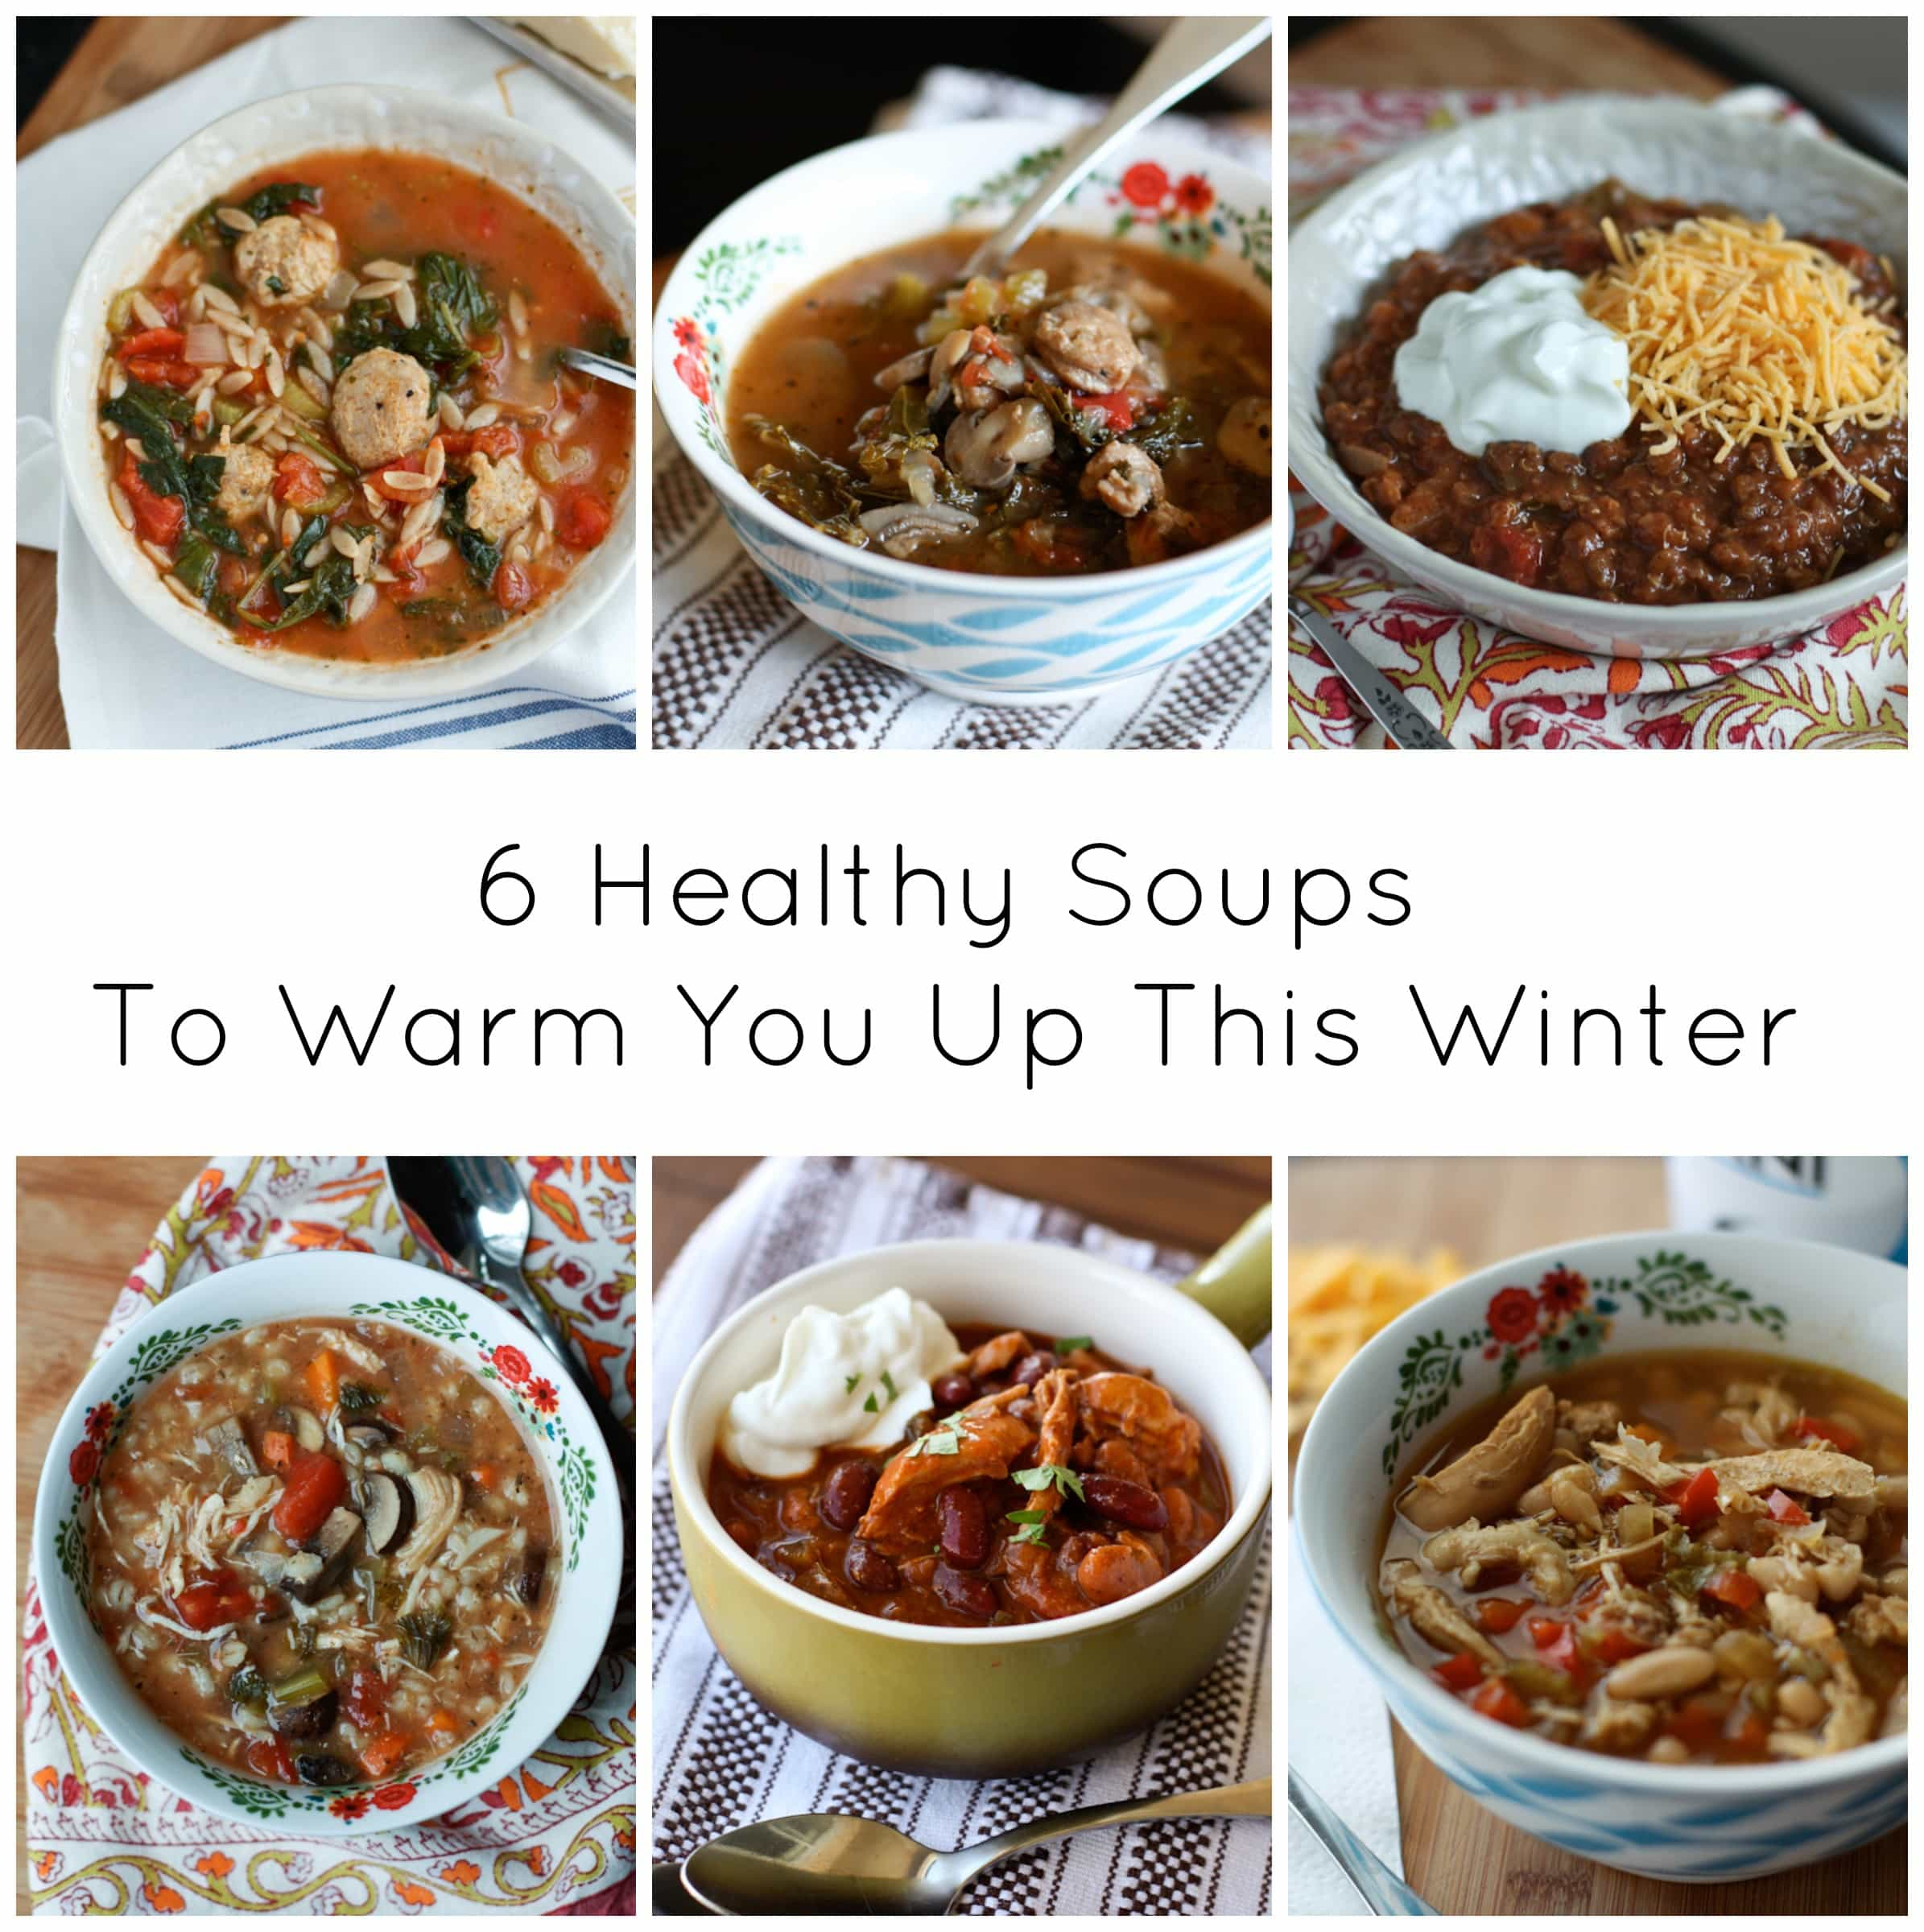 Winter Healthy Soup 6 Healthy Soups to Warm You up